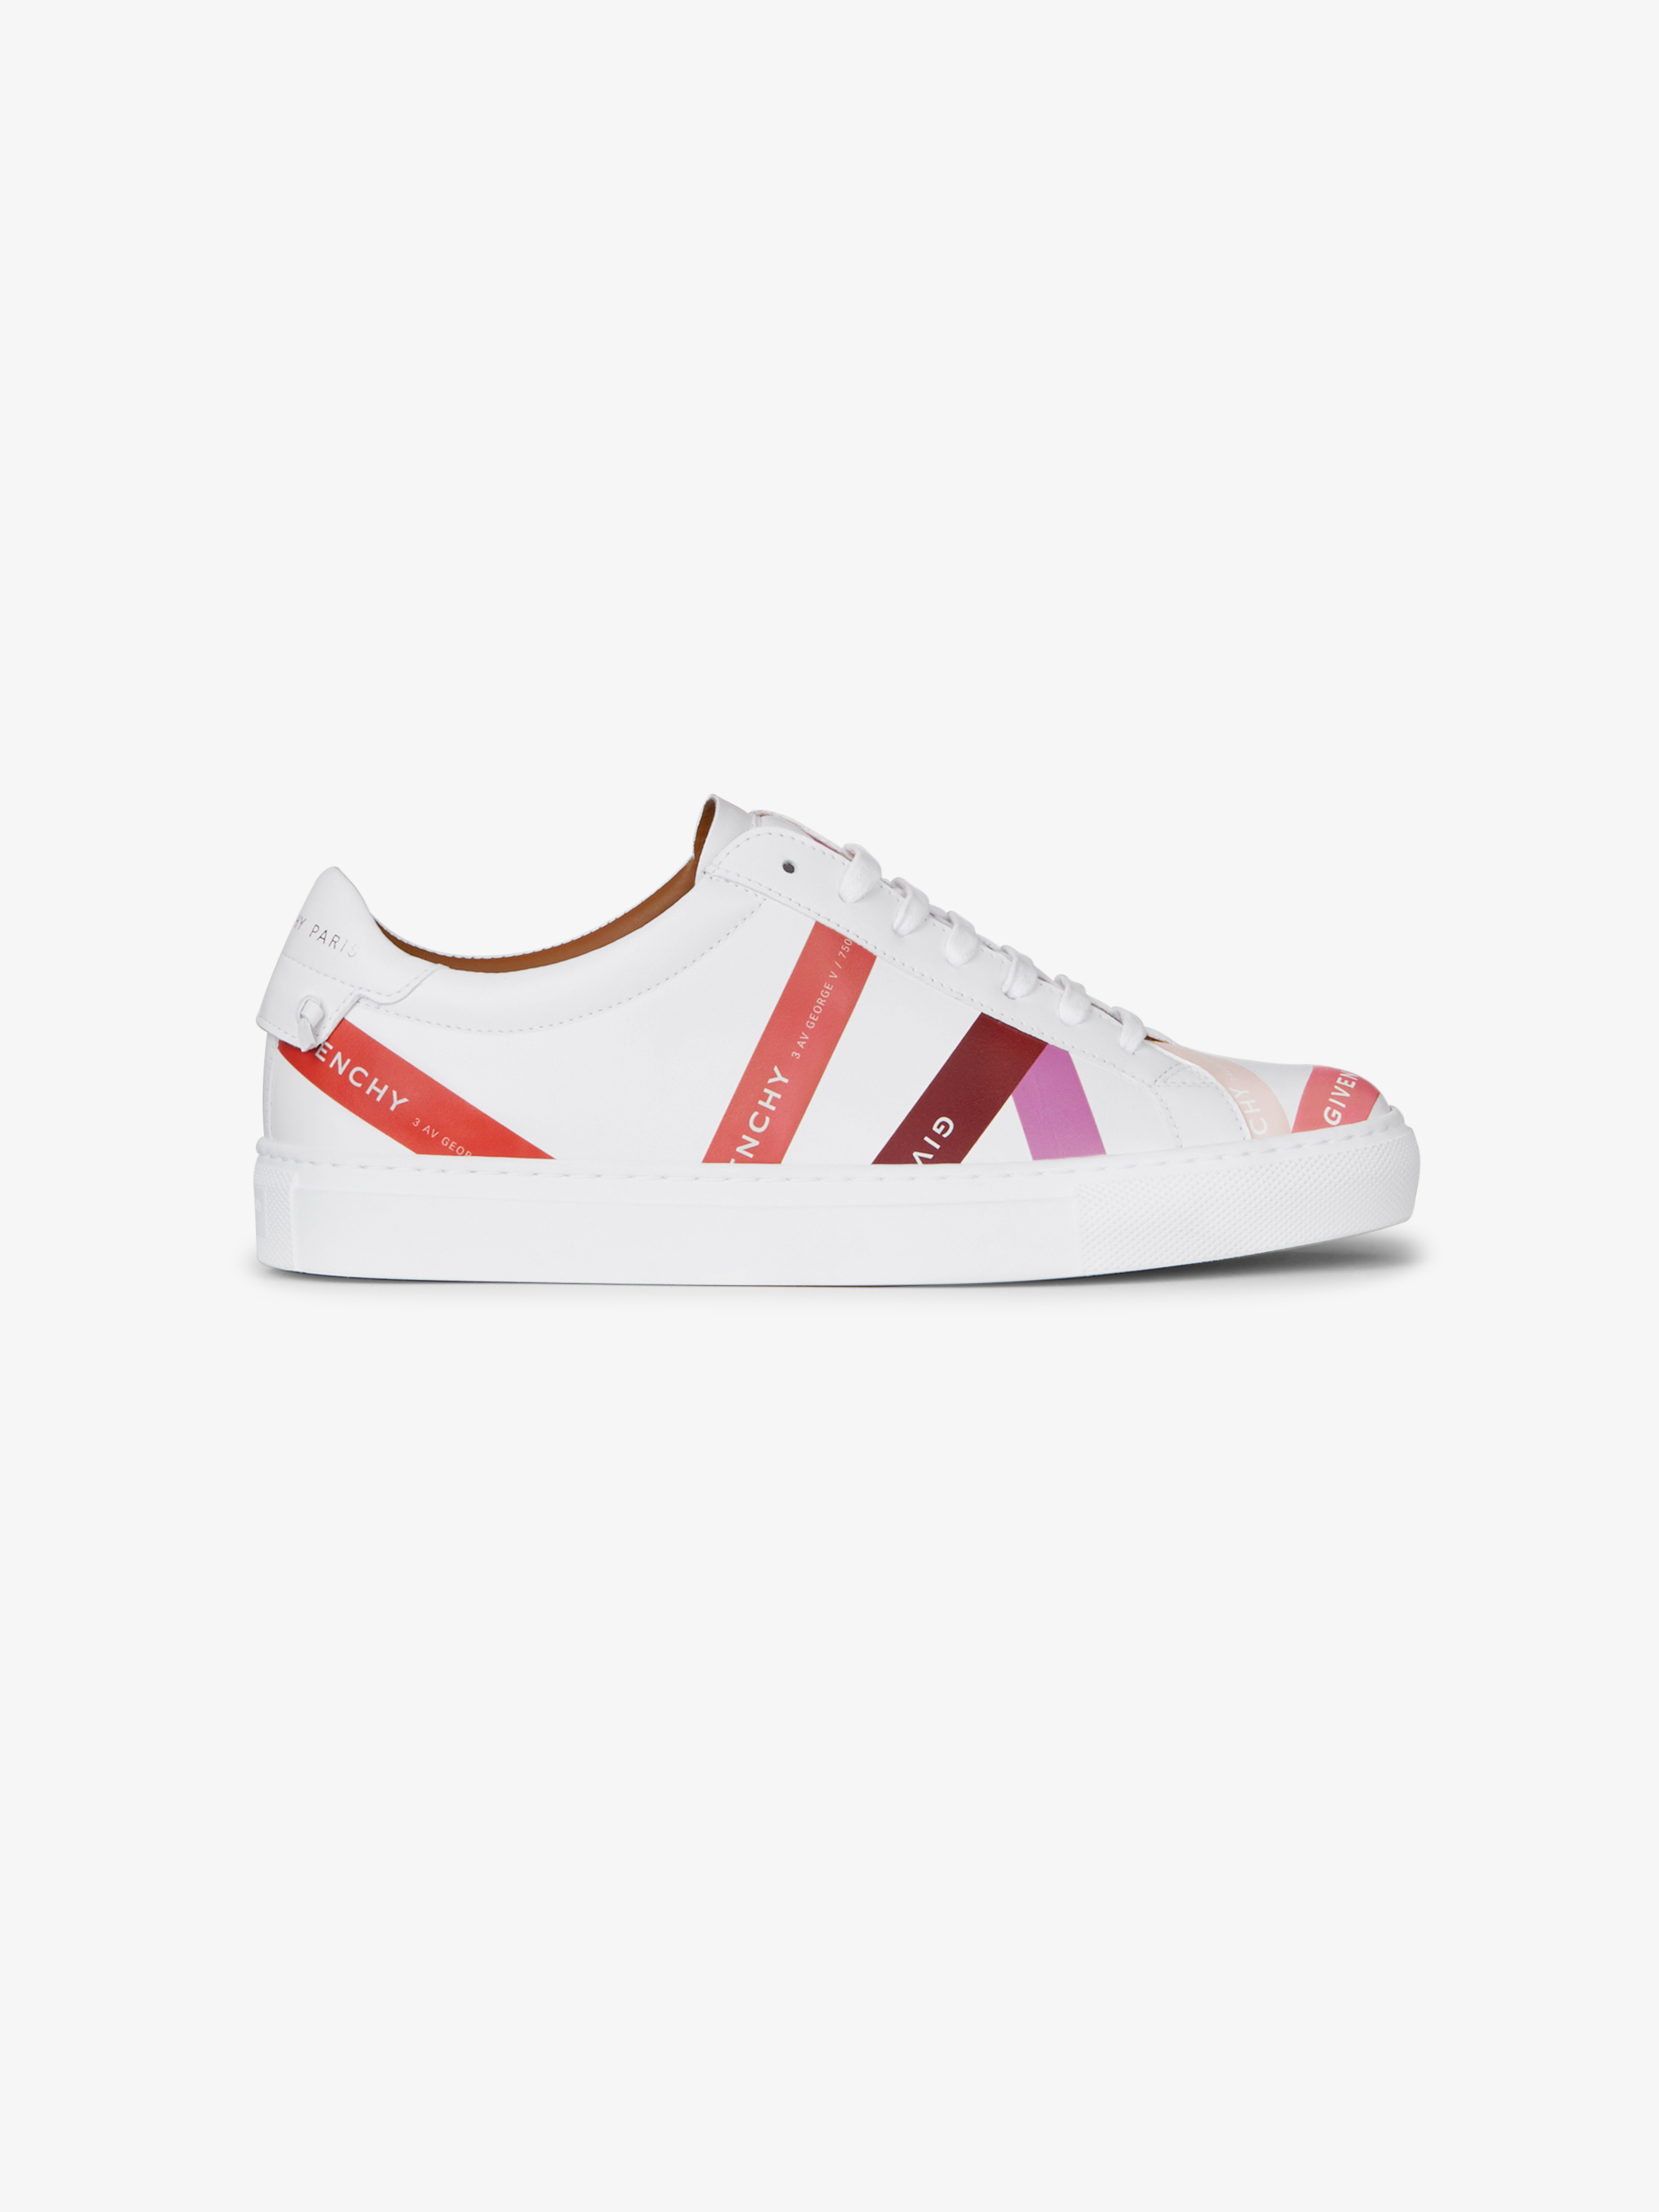 Sneakers in leather with multicoloured GIVENCHY bands